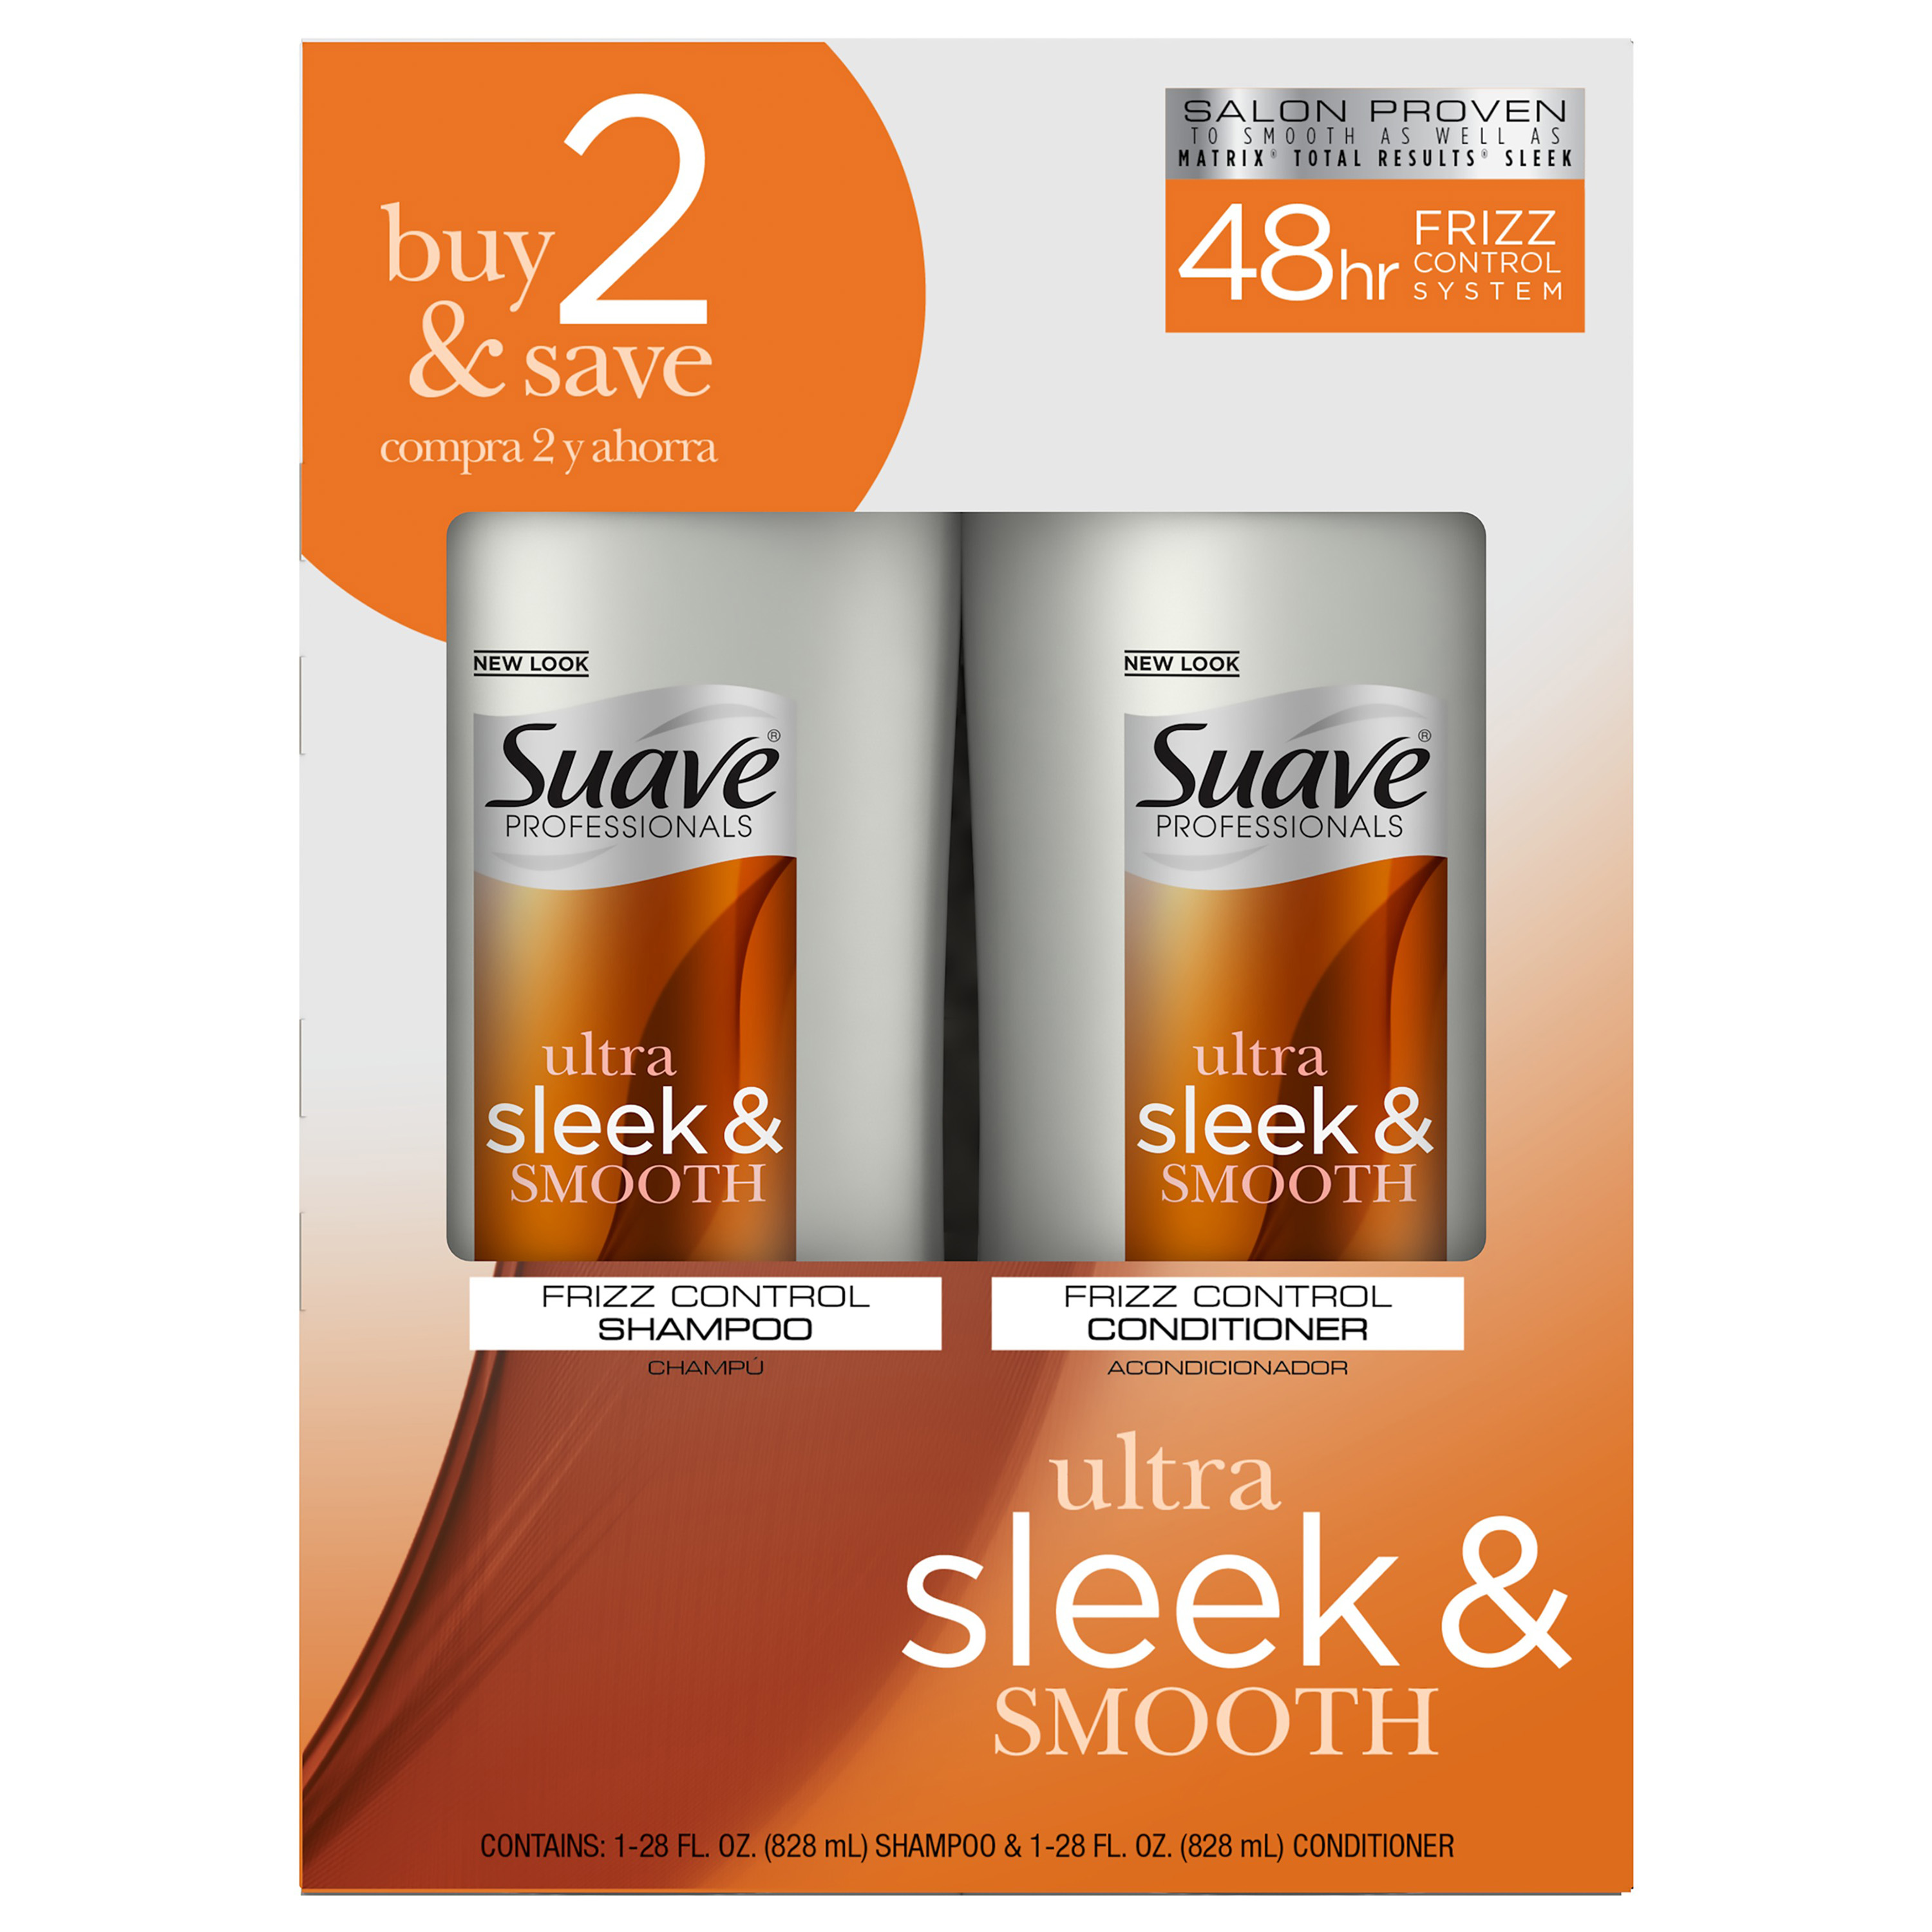 Suave Professionals Shampoo and Conditioner Sleek 28 oz, 2 count